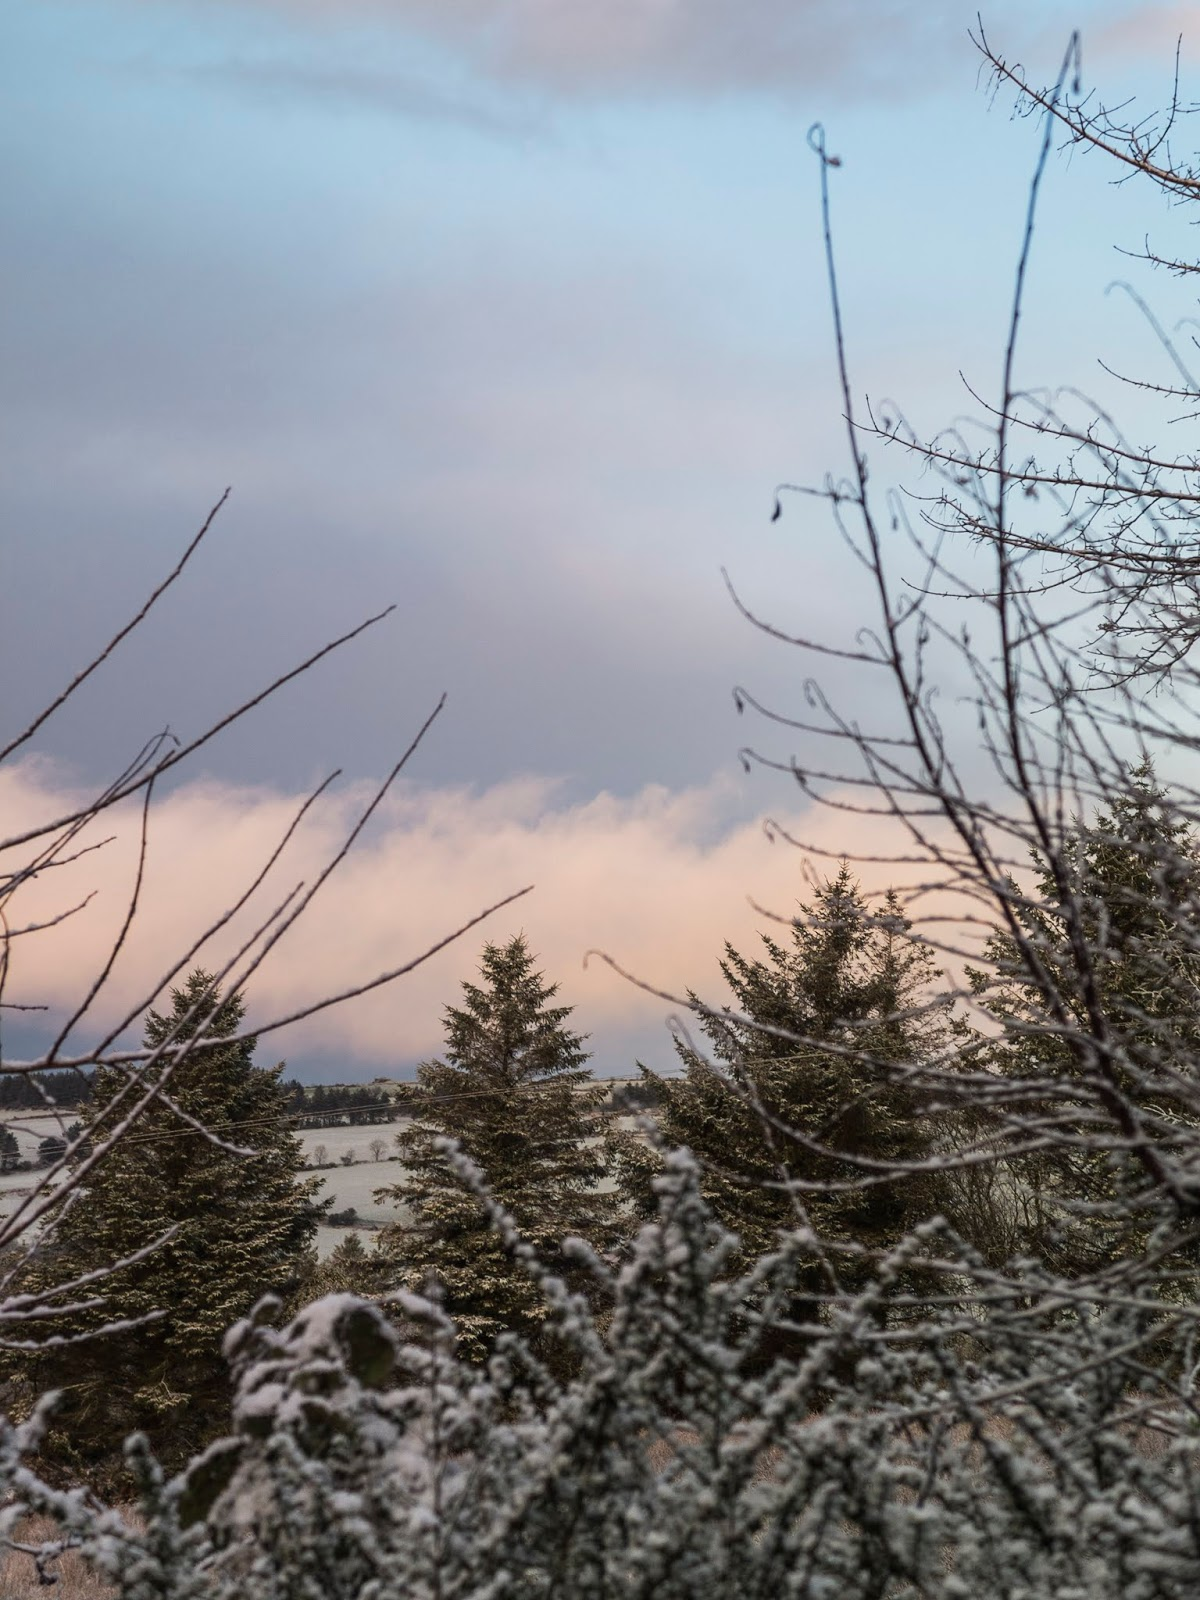 Sunset clouds behind snowy branches on a hillside.